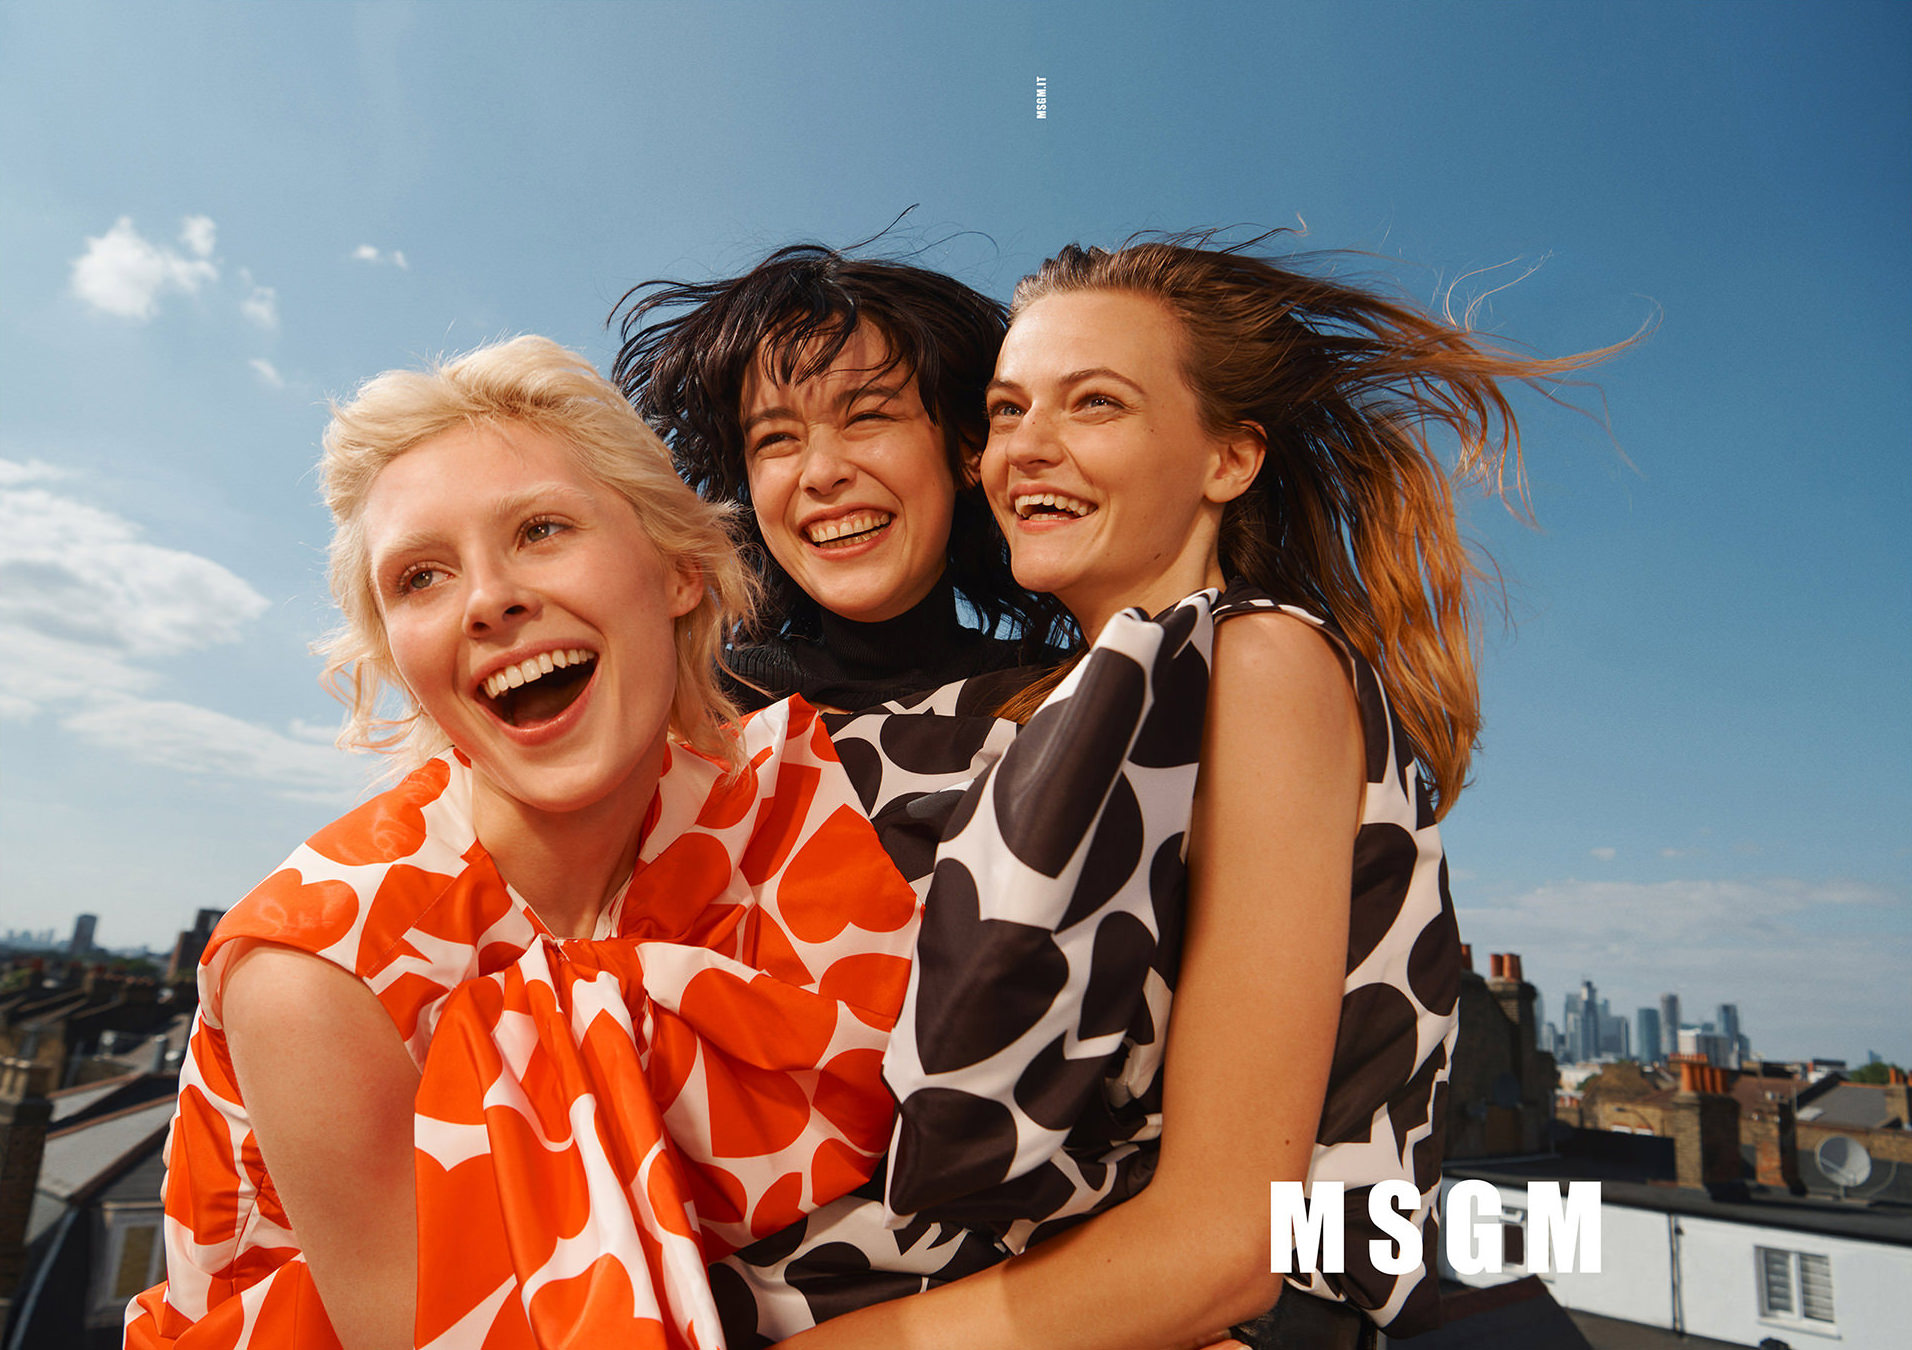 MSGM Fall 2019 Ad Campaign by Elaine Constantine